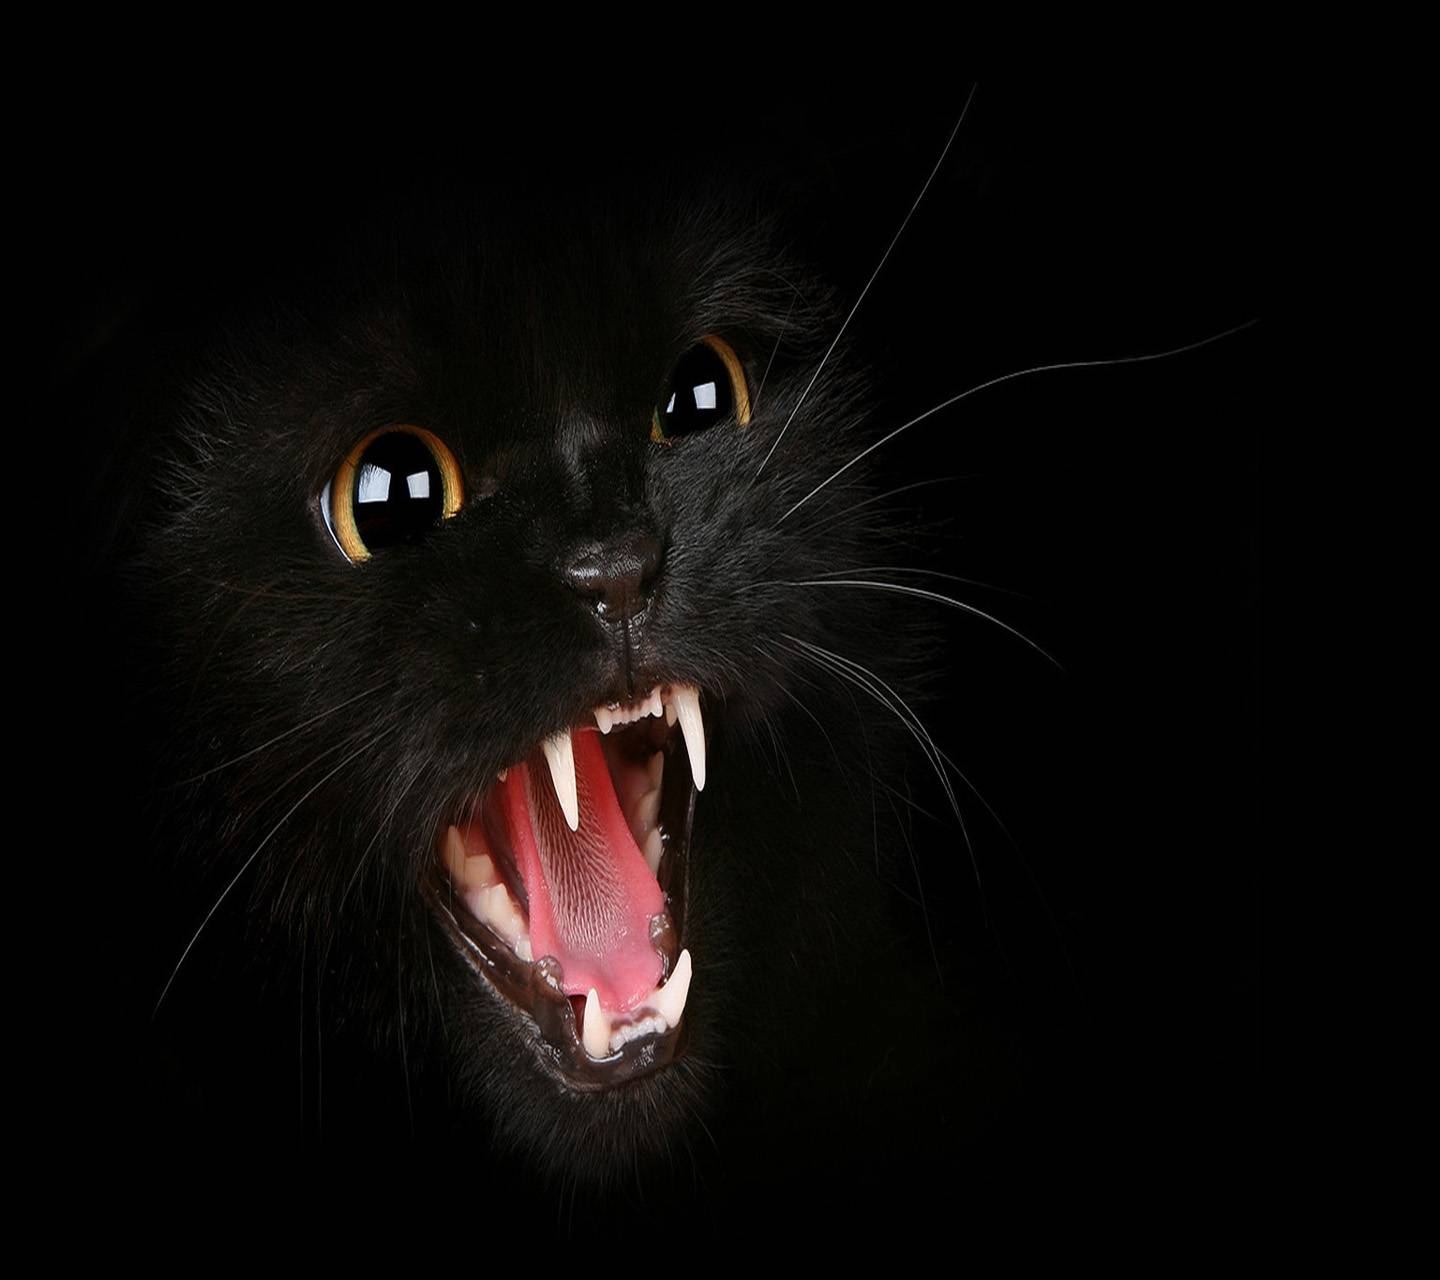 Angry Black Cat Wallpaper By LuCkyman